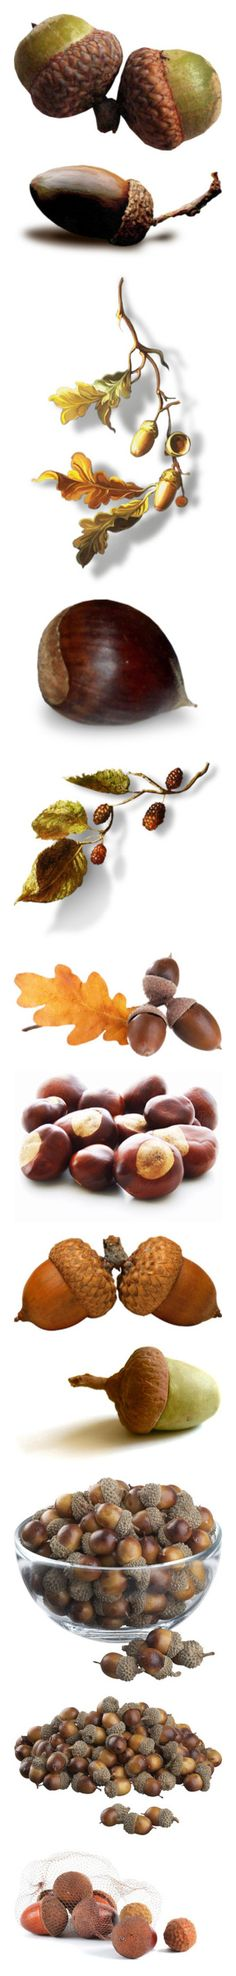 """Fall Nuts"" by nwmontana ❤ liked on Polyvore featuring autumn, plants, fall, fillers, food, nature, leaves, branches, backgrounds and flowers"